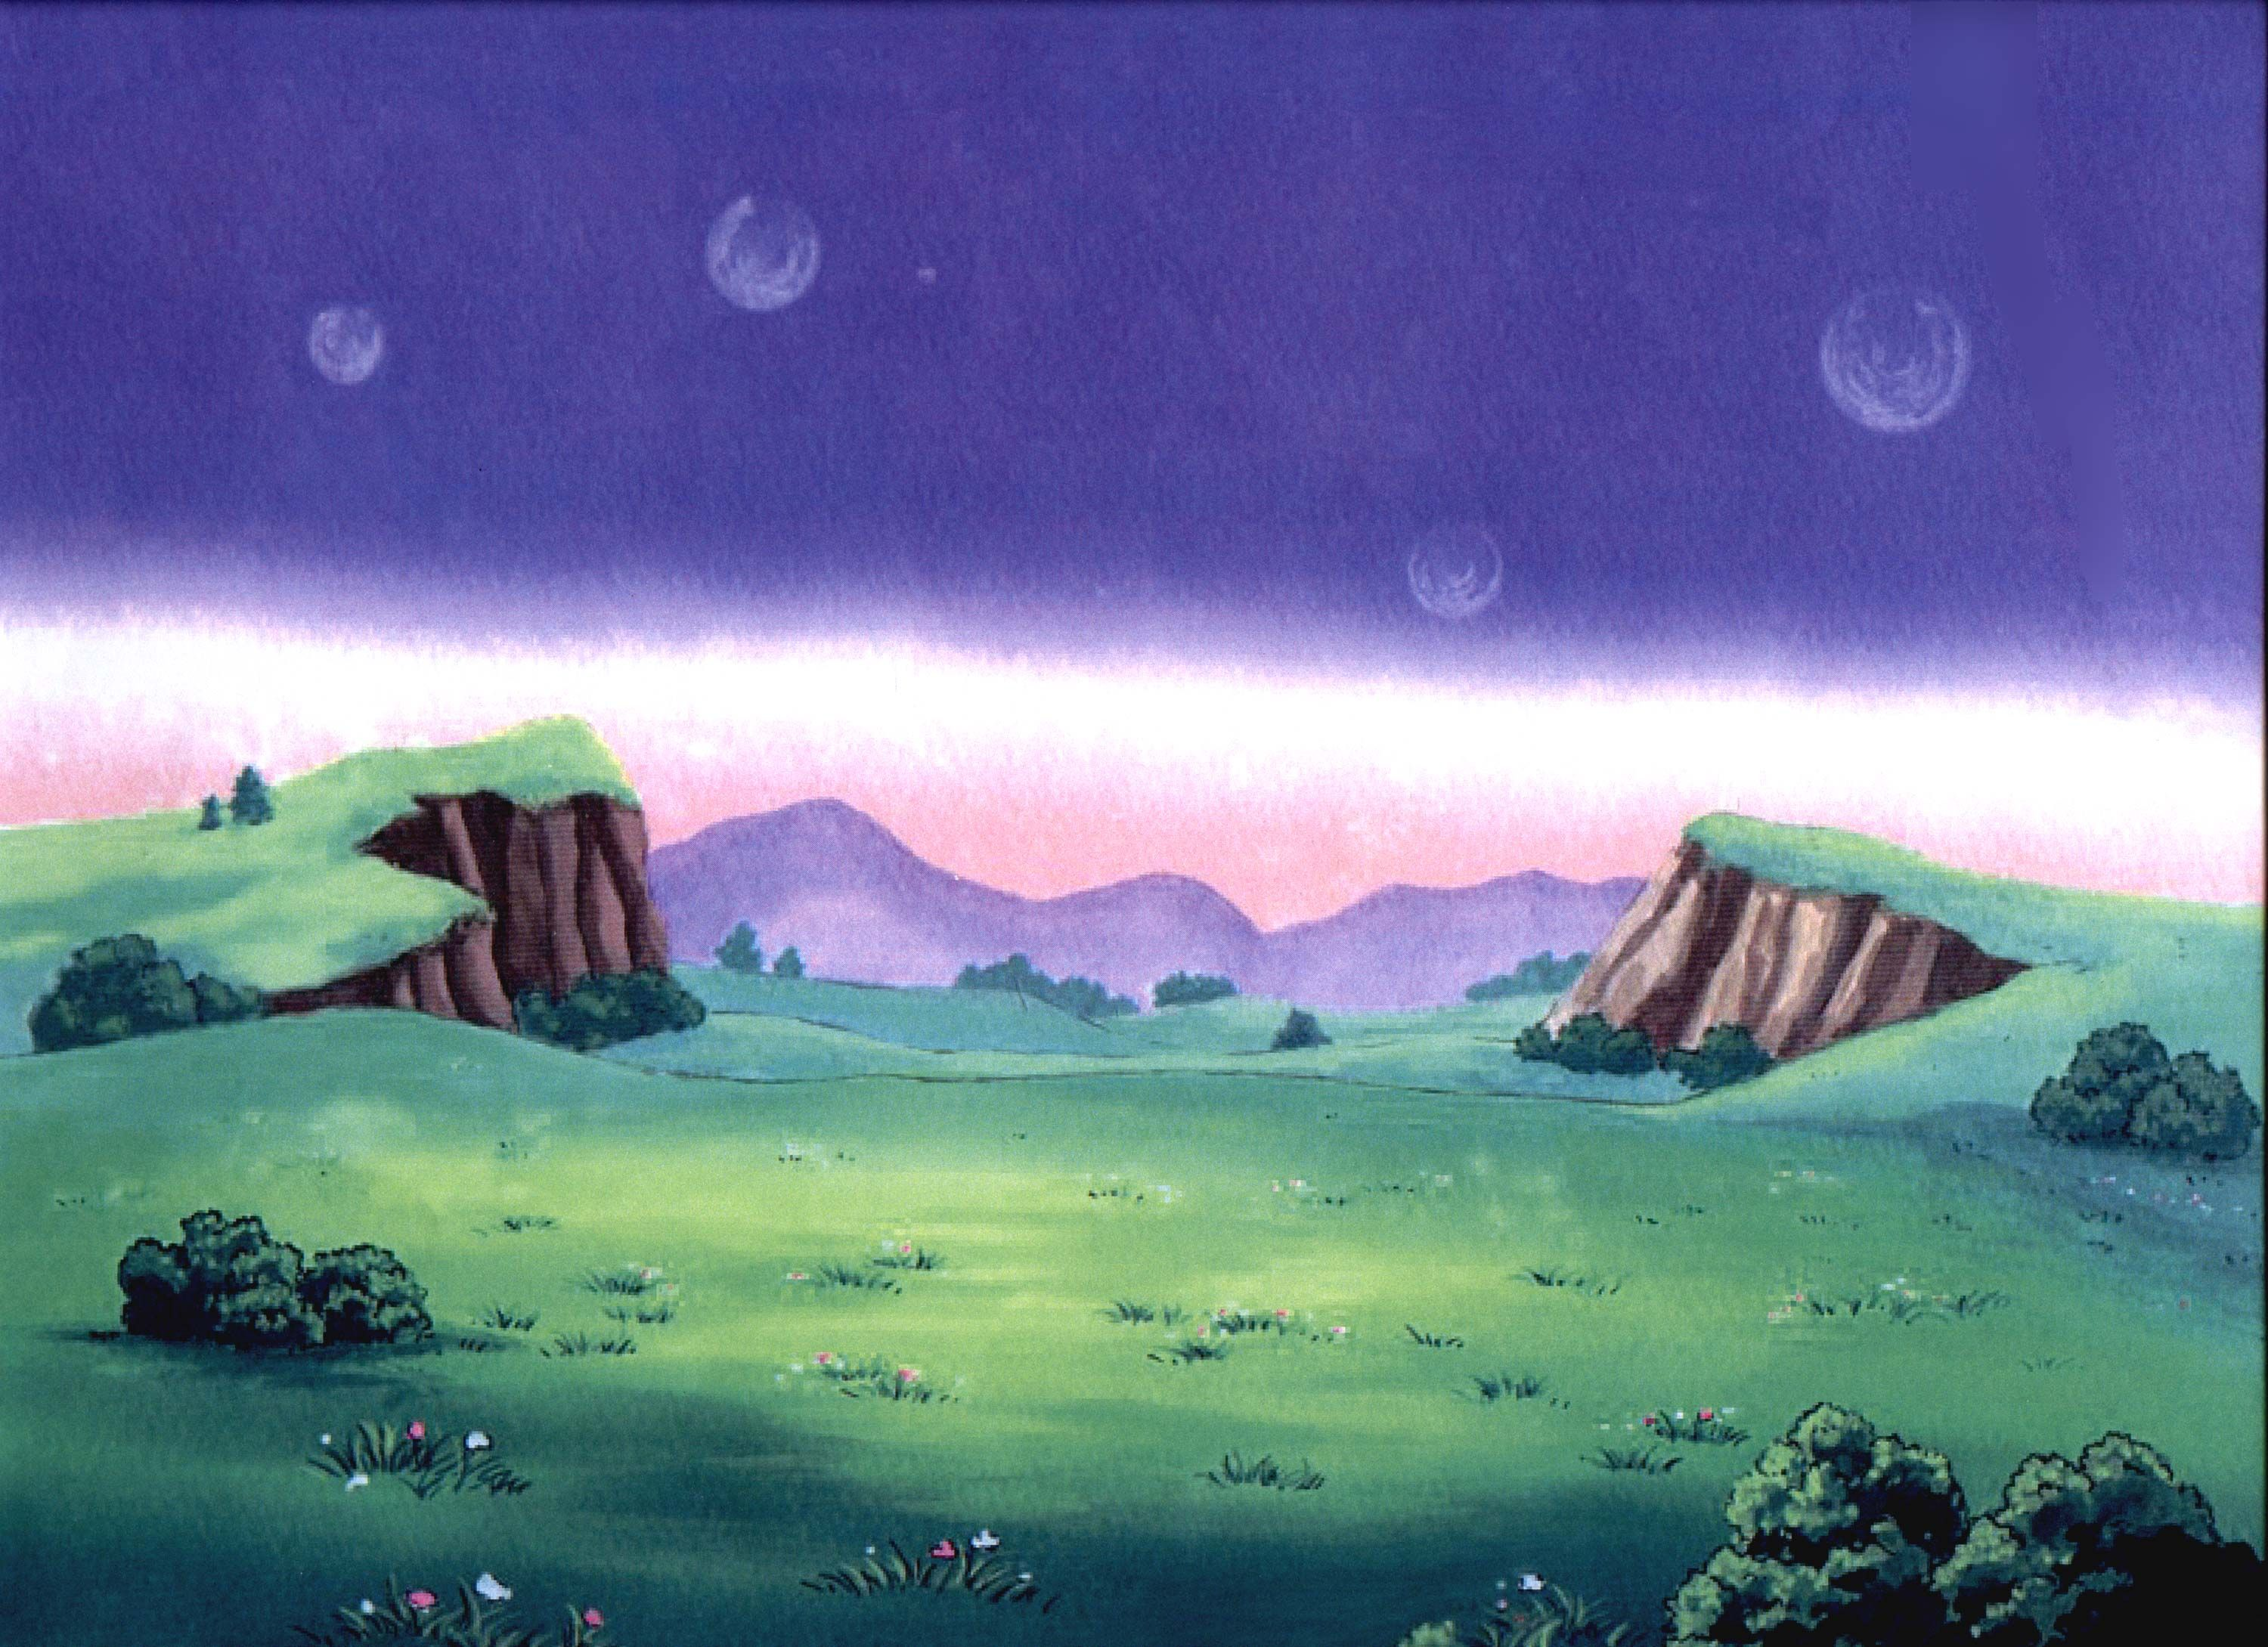 Pin By David Silverstein On Landscape Dragon Ball Wallpapers